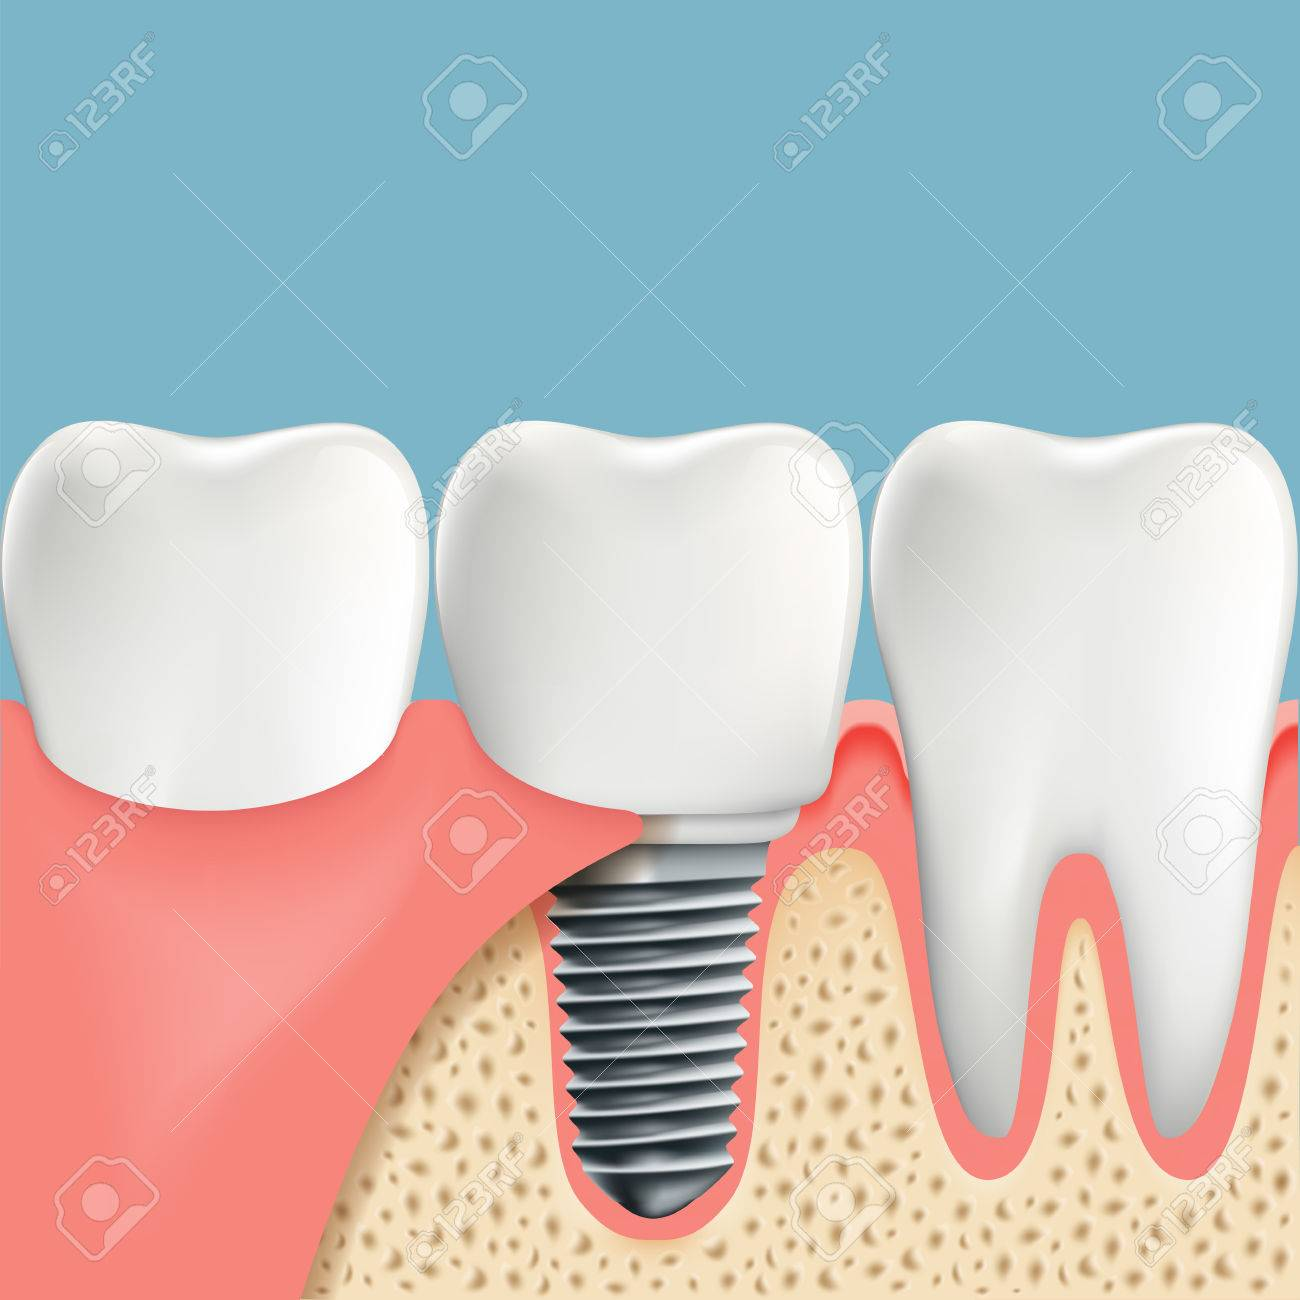 Human Teeth And Dental Implant Anatomy Of The Oral Cavity Stock